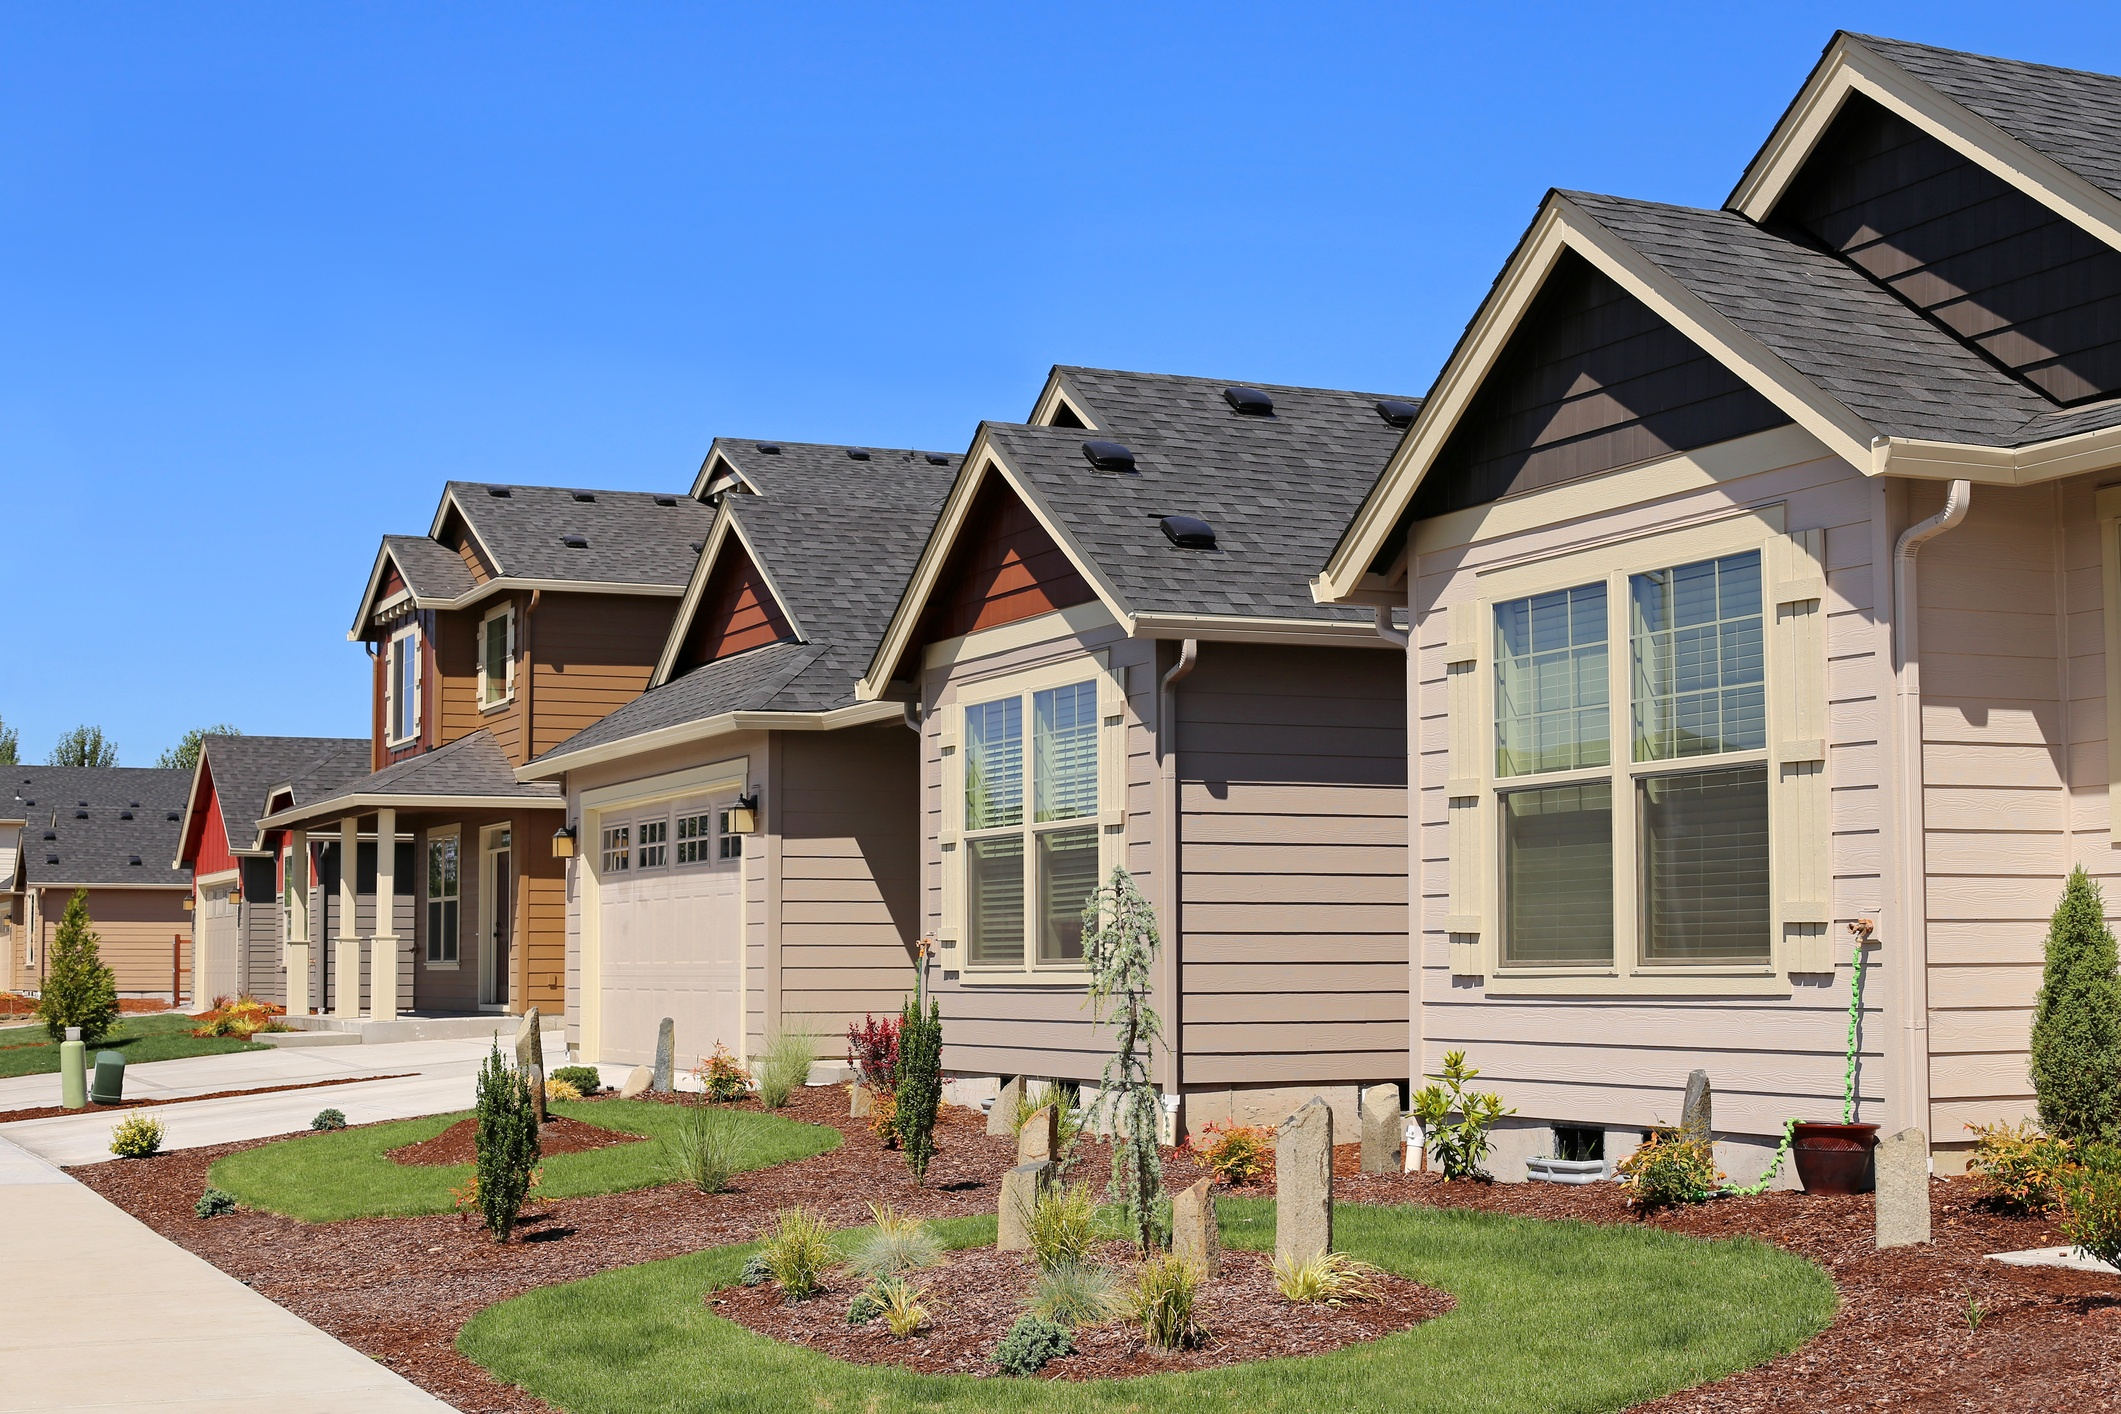 The pros and cons of moving to a new subdivision